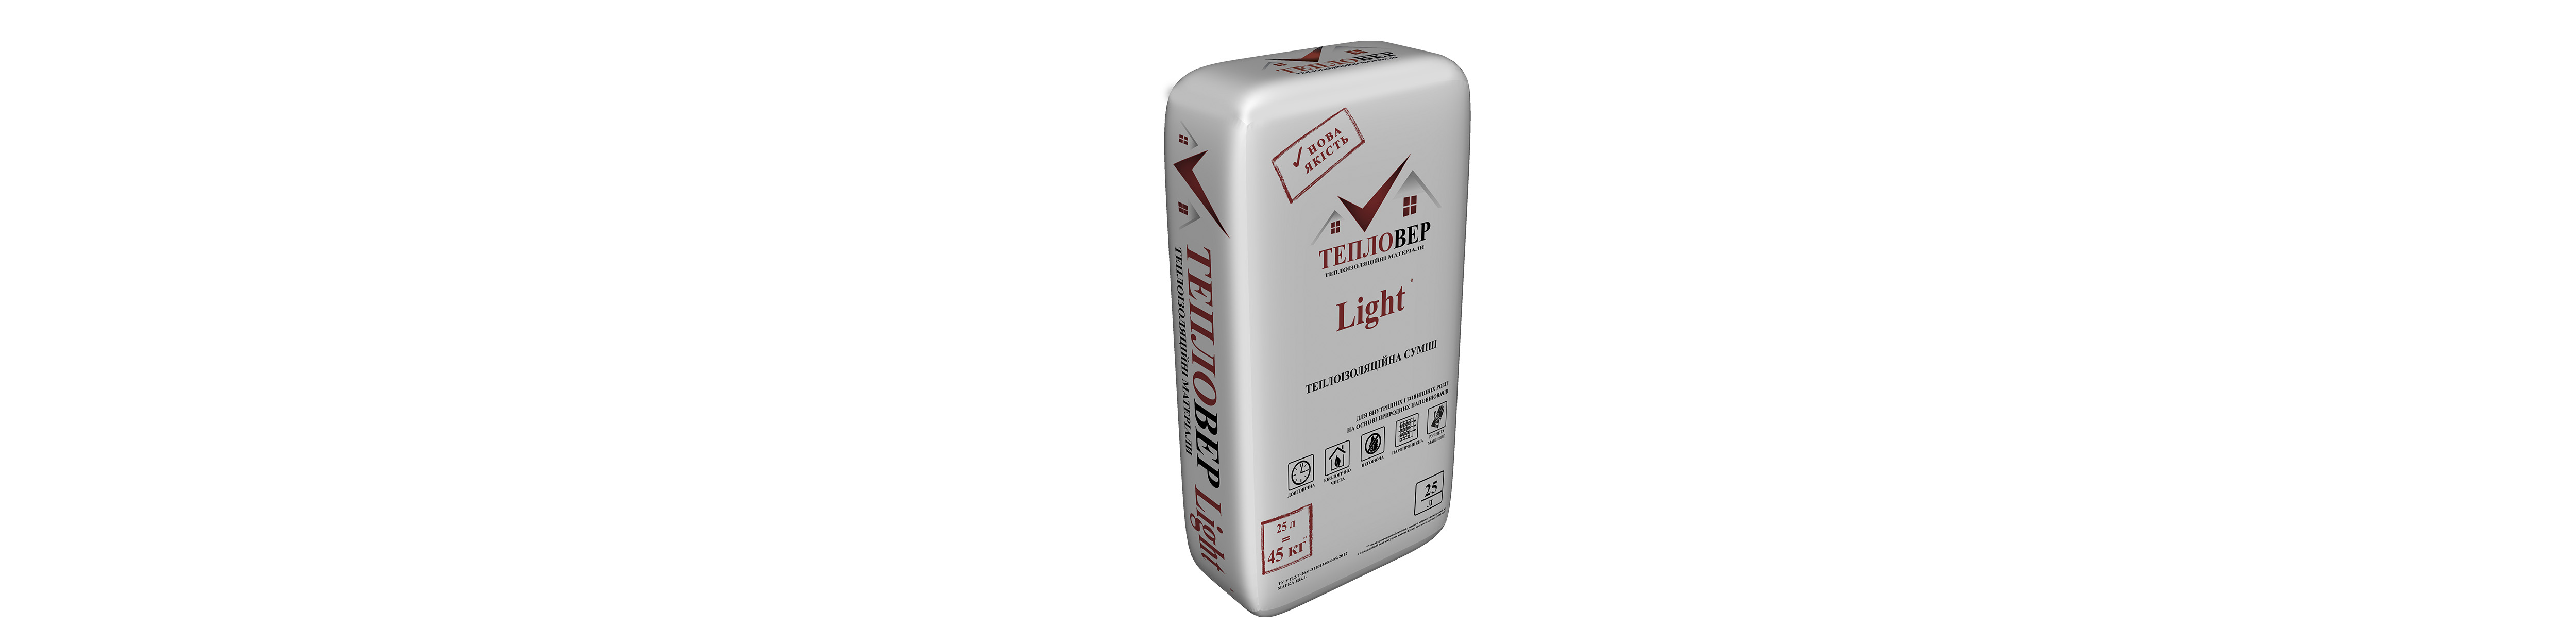 LIGHT_products_big.jpg